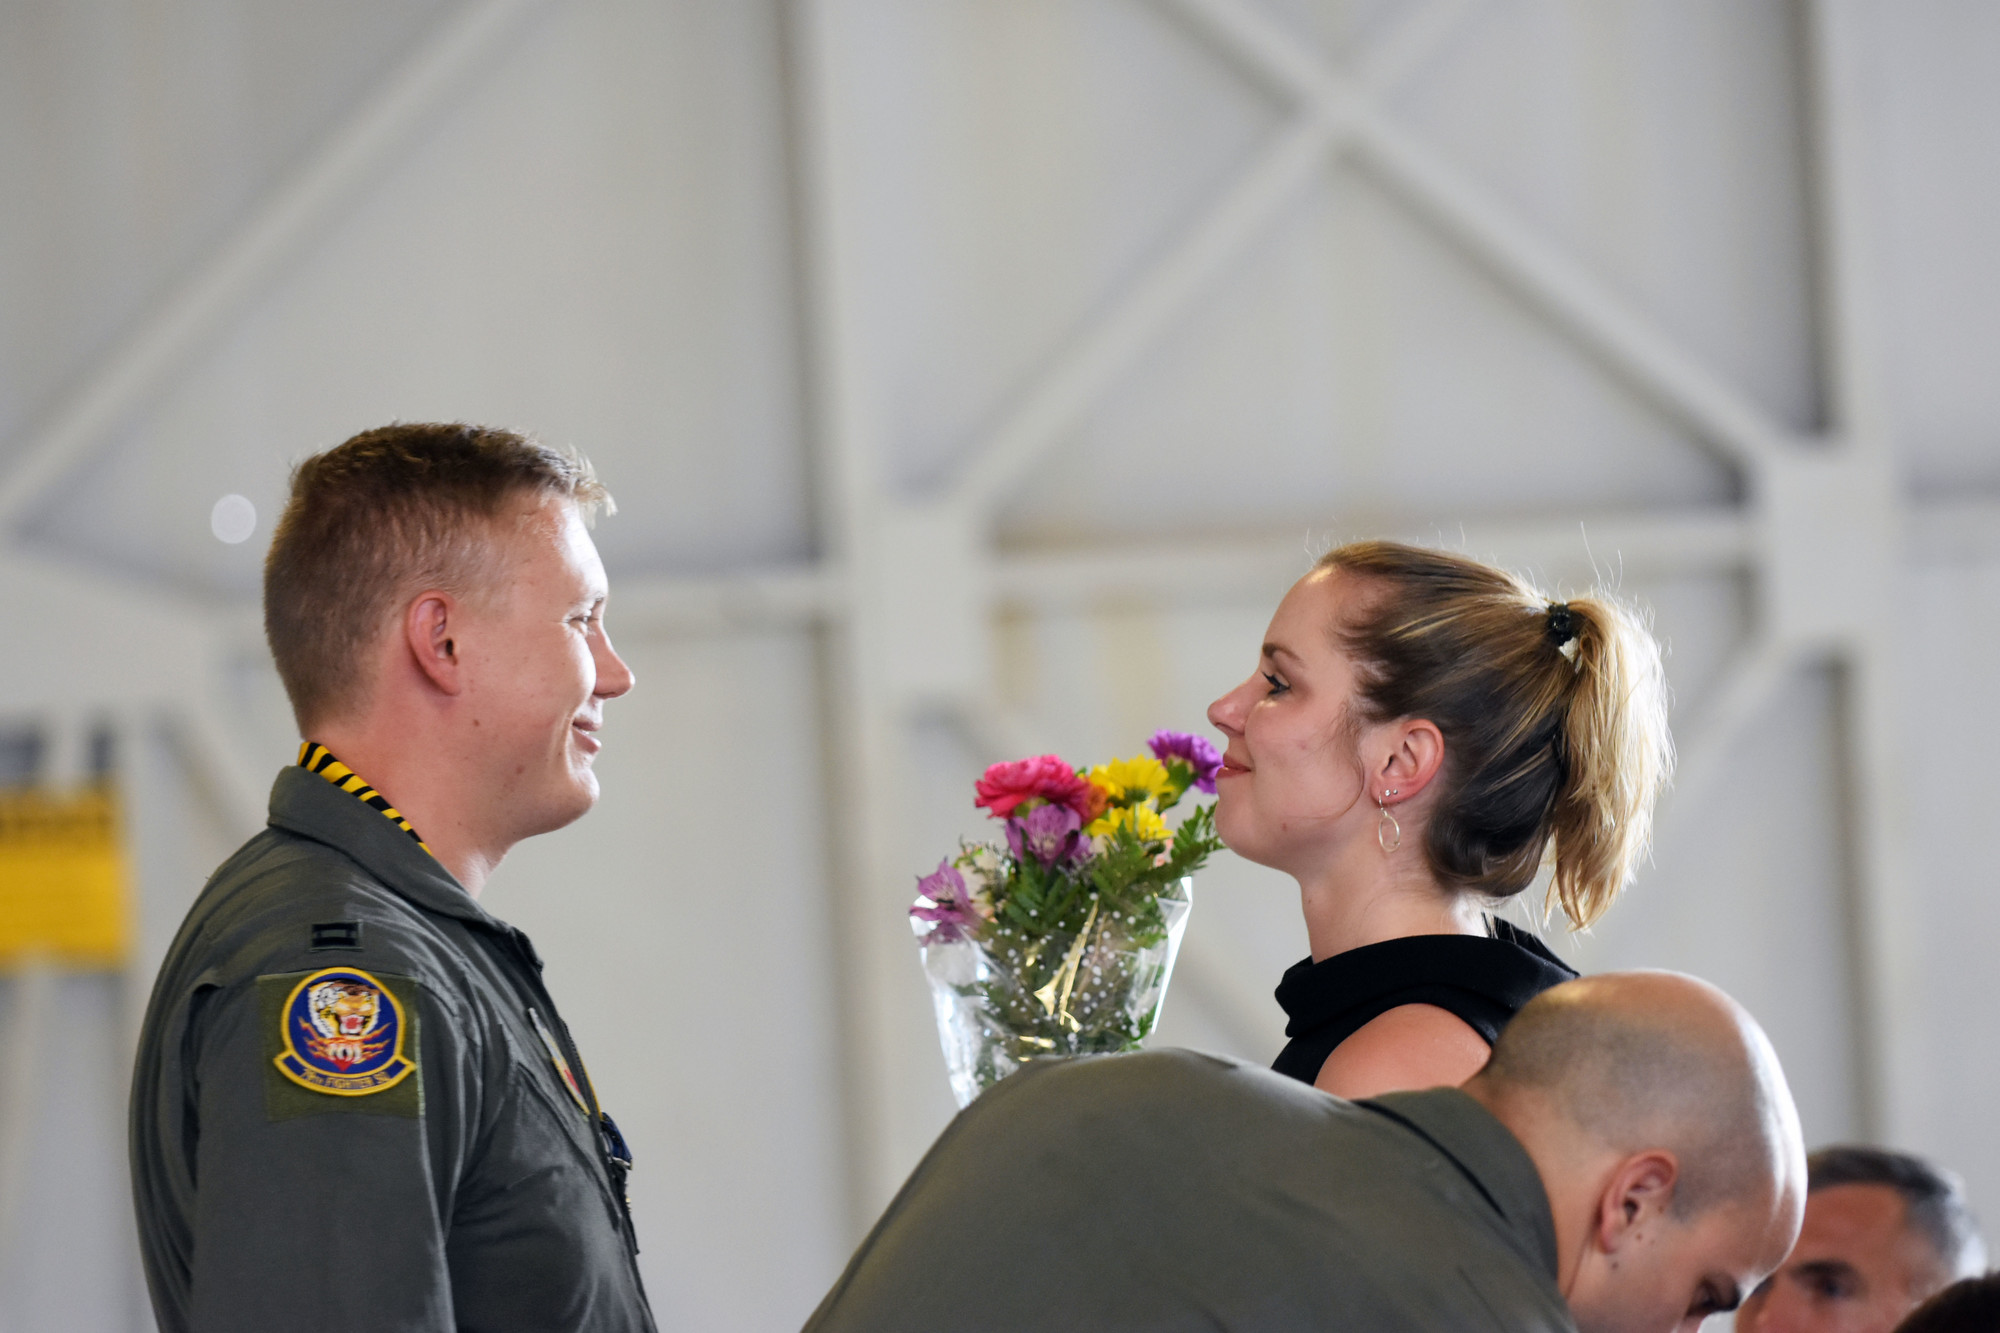 Capt. John Nygard shares a moment with his wife, Laura, after giving her flowers at his DFC Medal ceremony Thursday at Shaw Air Force Base.